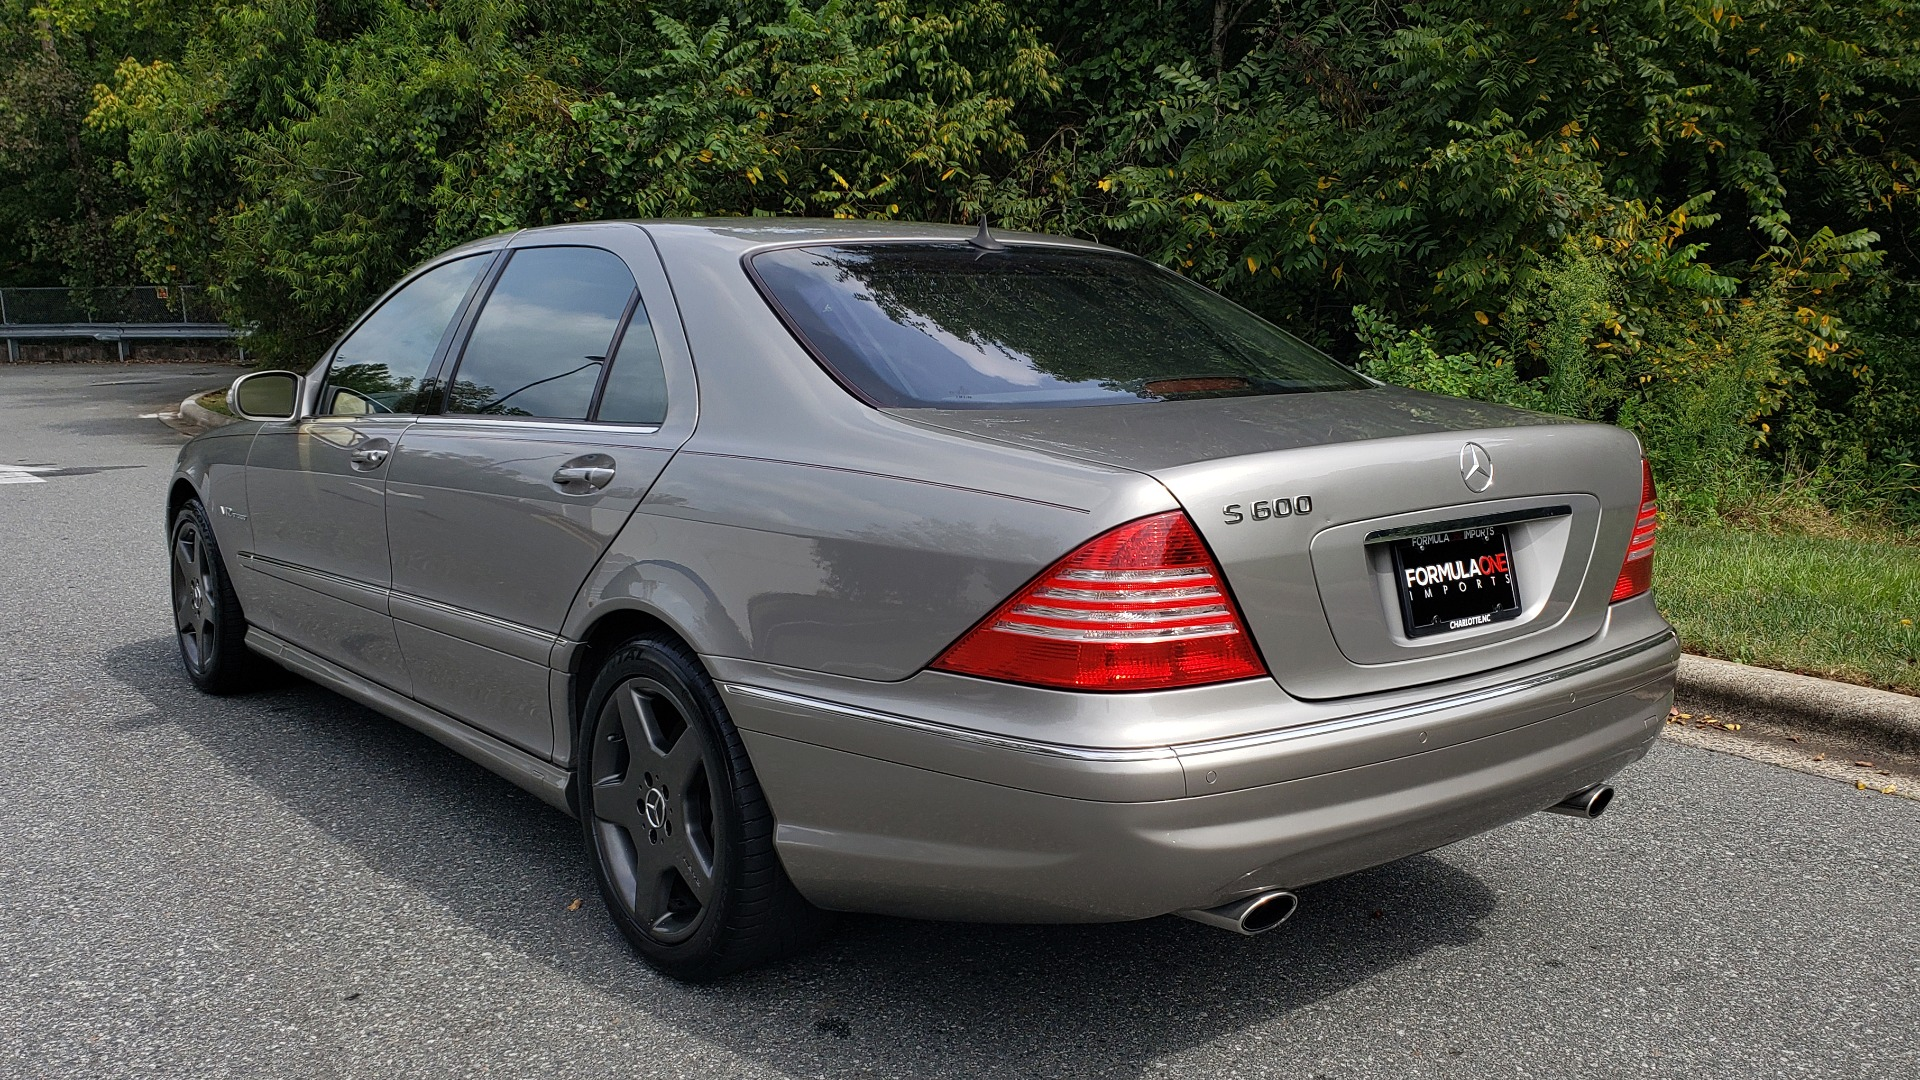 Used 2003 Mercedes-Benz S-CLASS S600 5.5L V12 SEDAN / SUNROOF / KEYLESS-GO / BOSE for sale Sold at Formula Imports in Charlotte NC 28227 3